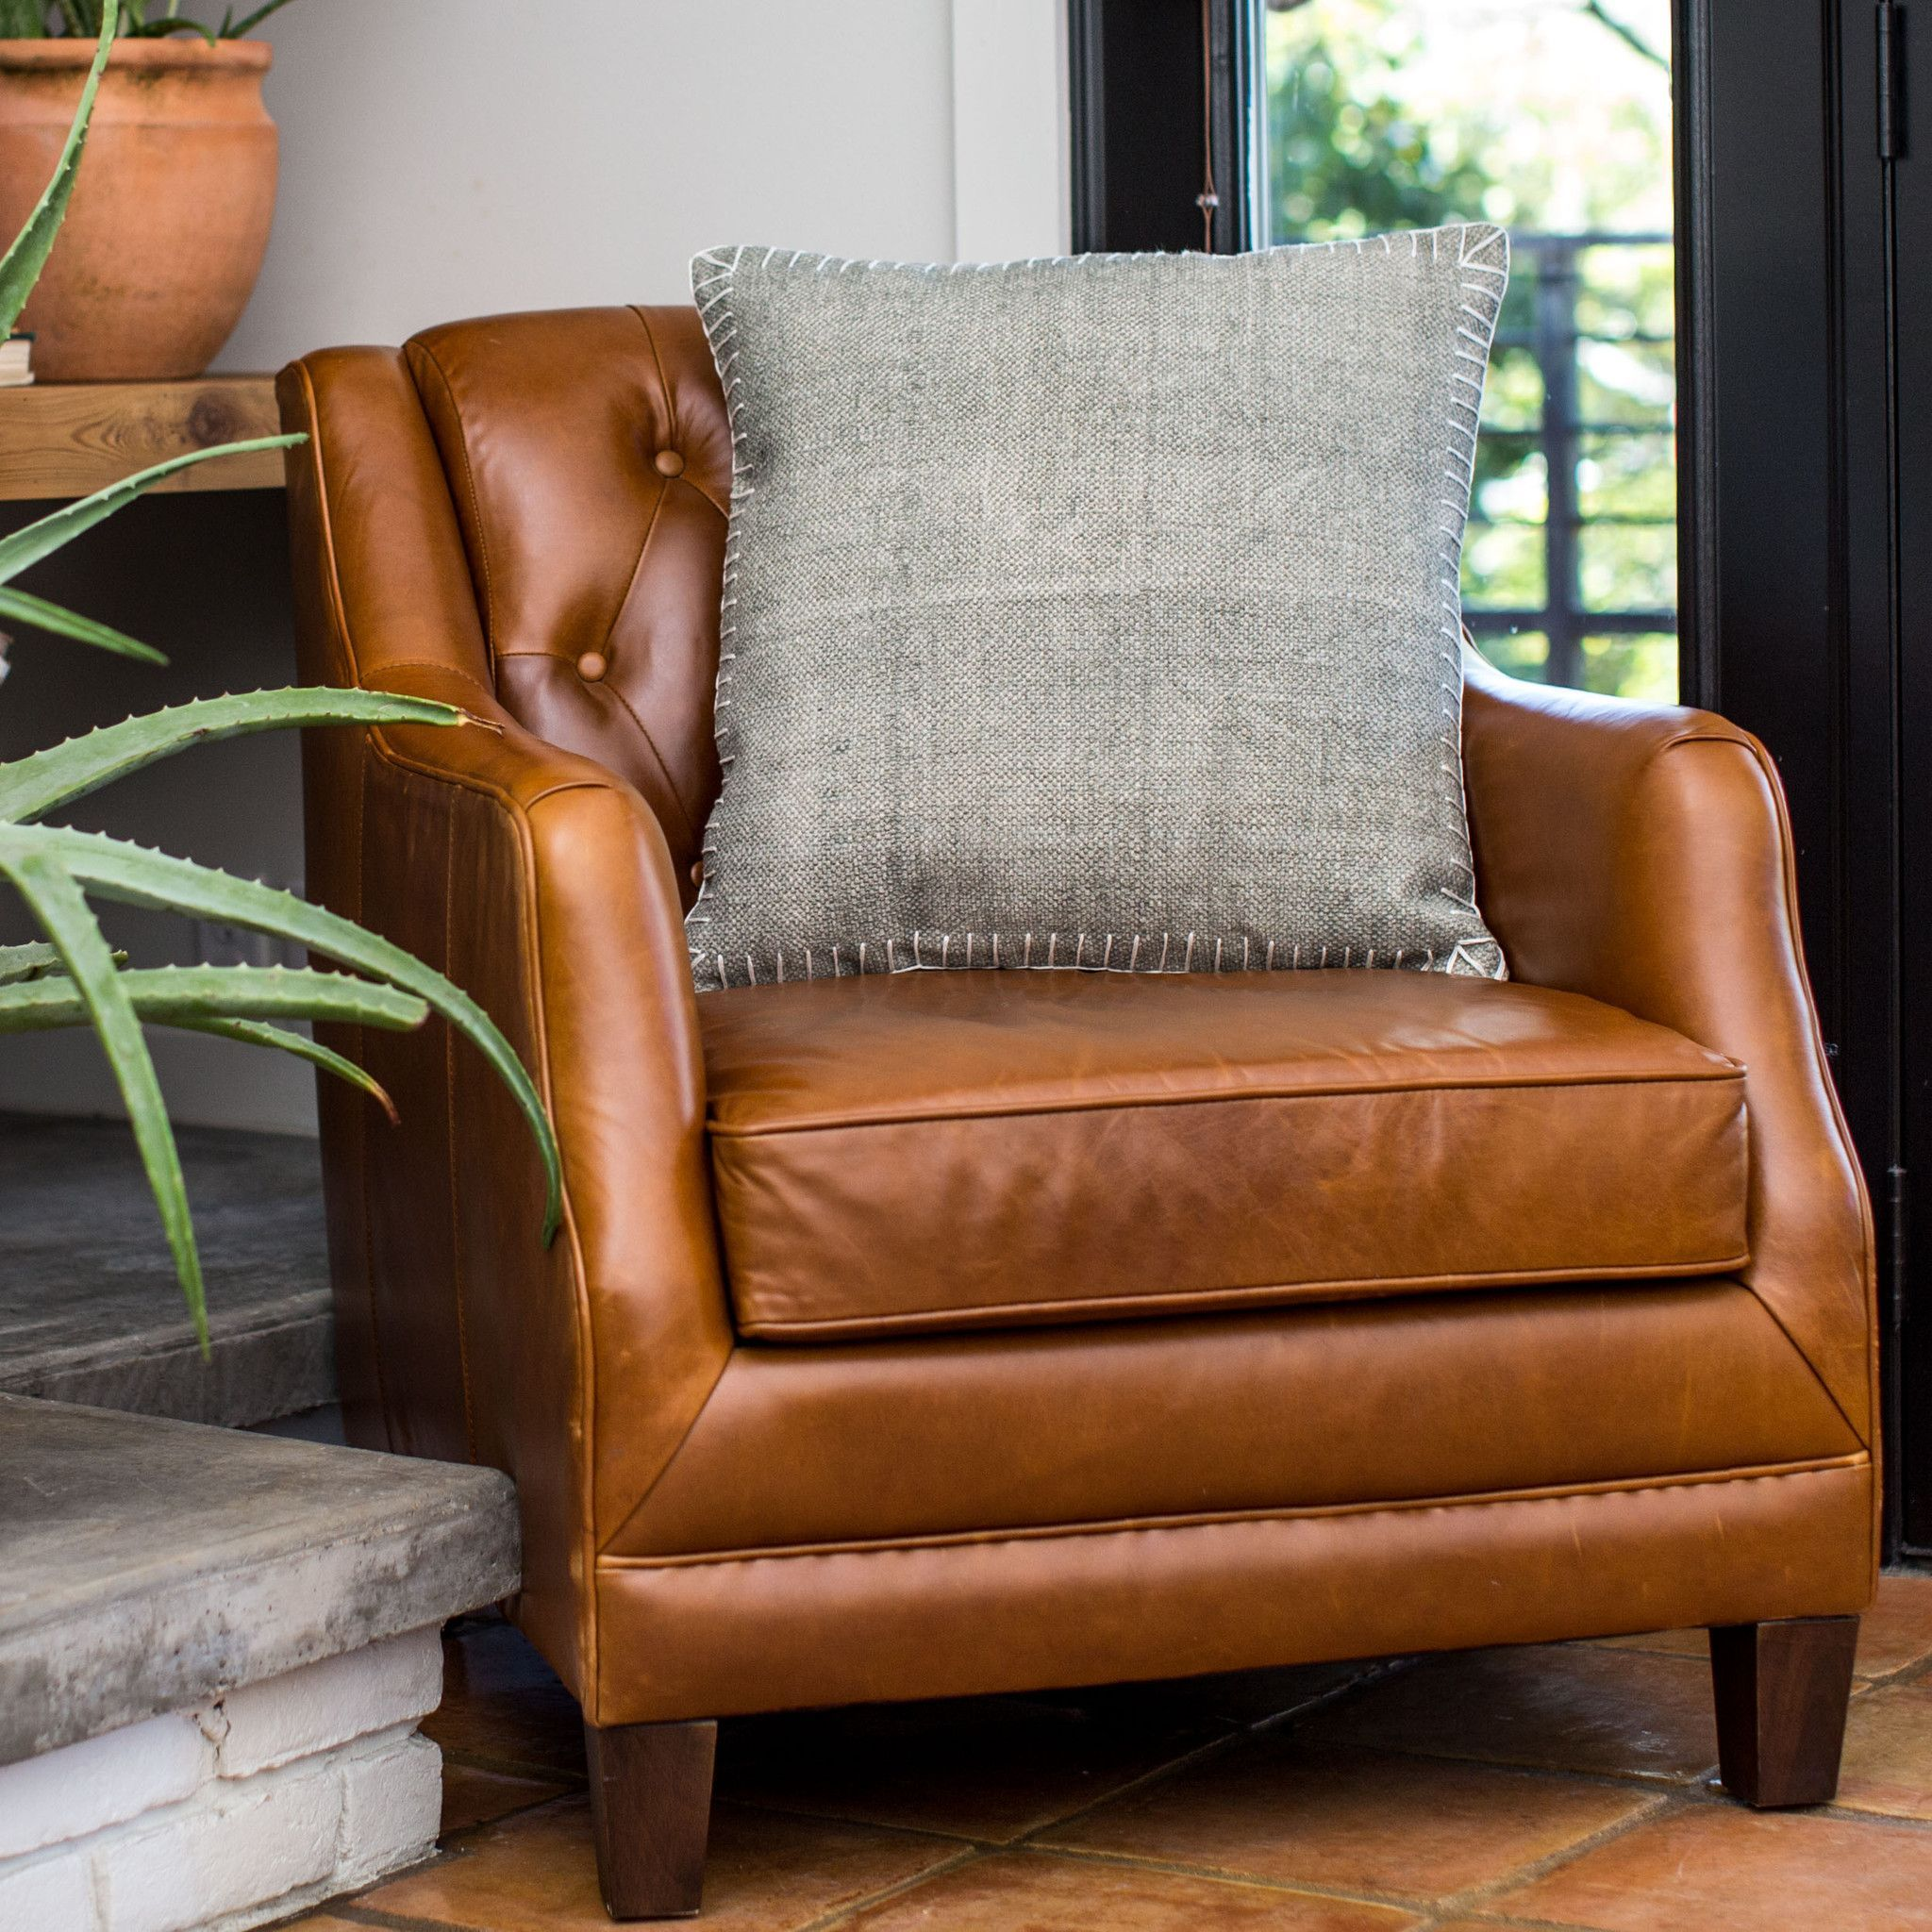 Silverado Leather Sectional in Caramel Brown